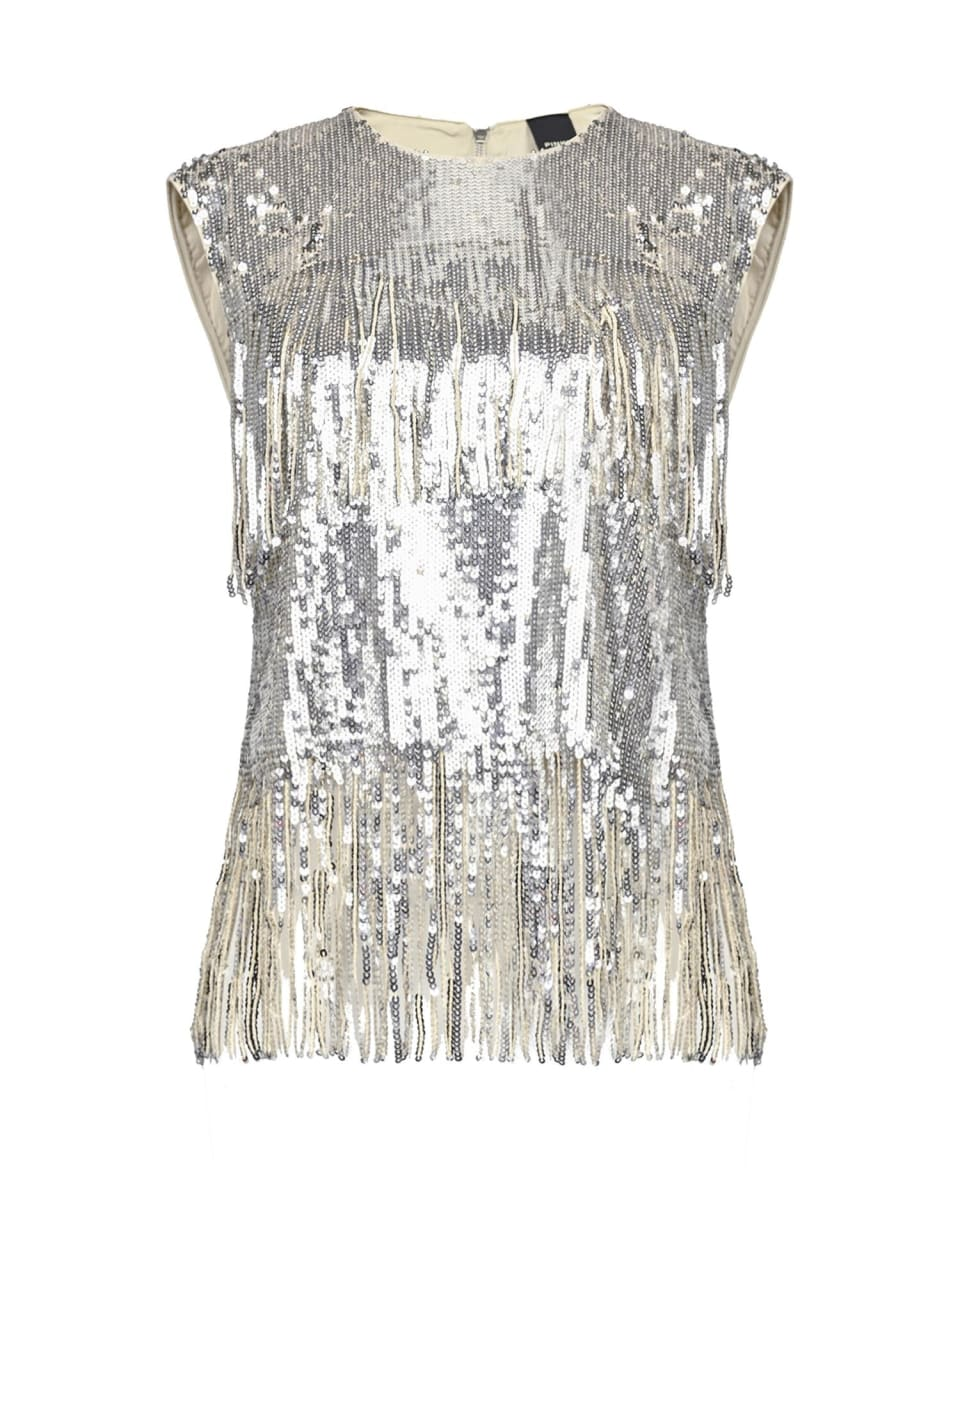 Top in full sequins with fringe